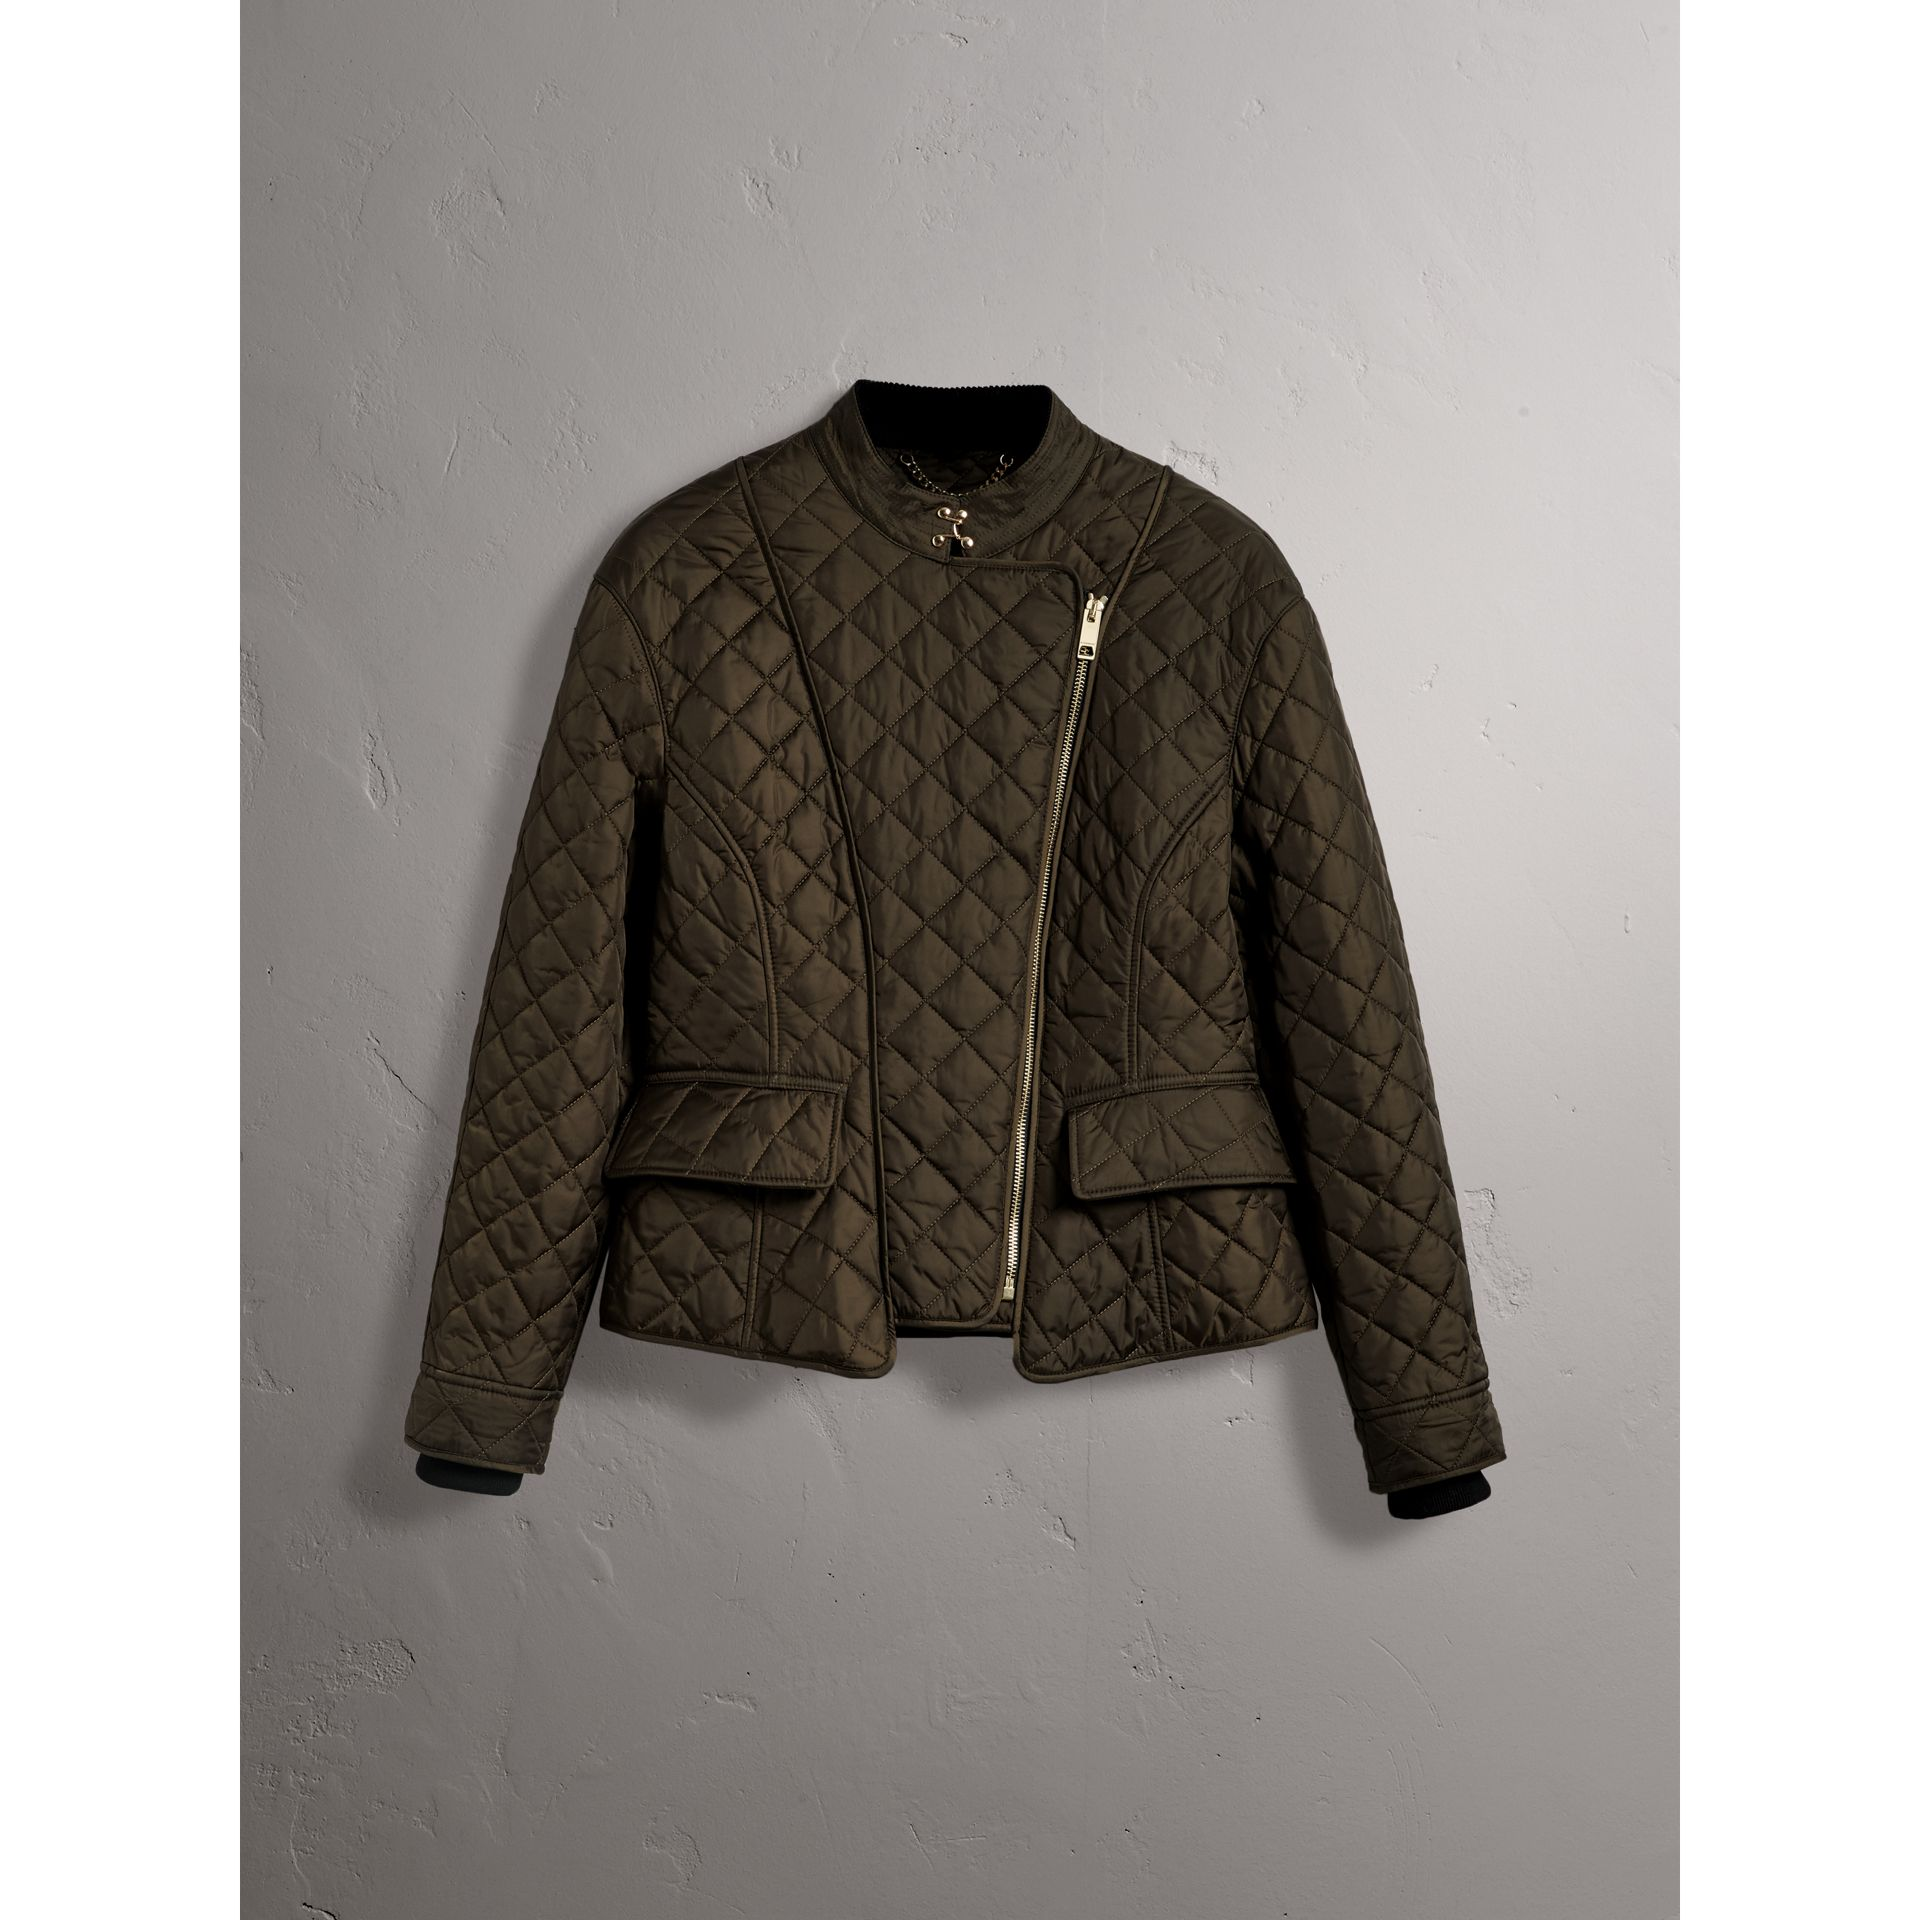 Diamond Quilted Jacket in Dark Olive - Women | Burberry - gallery image 3